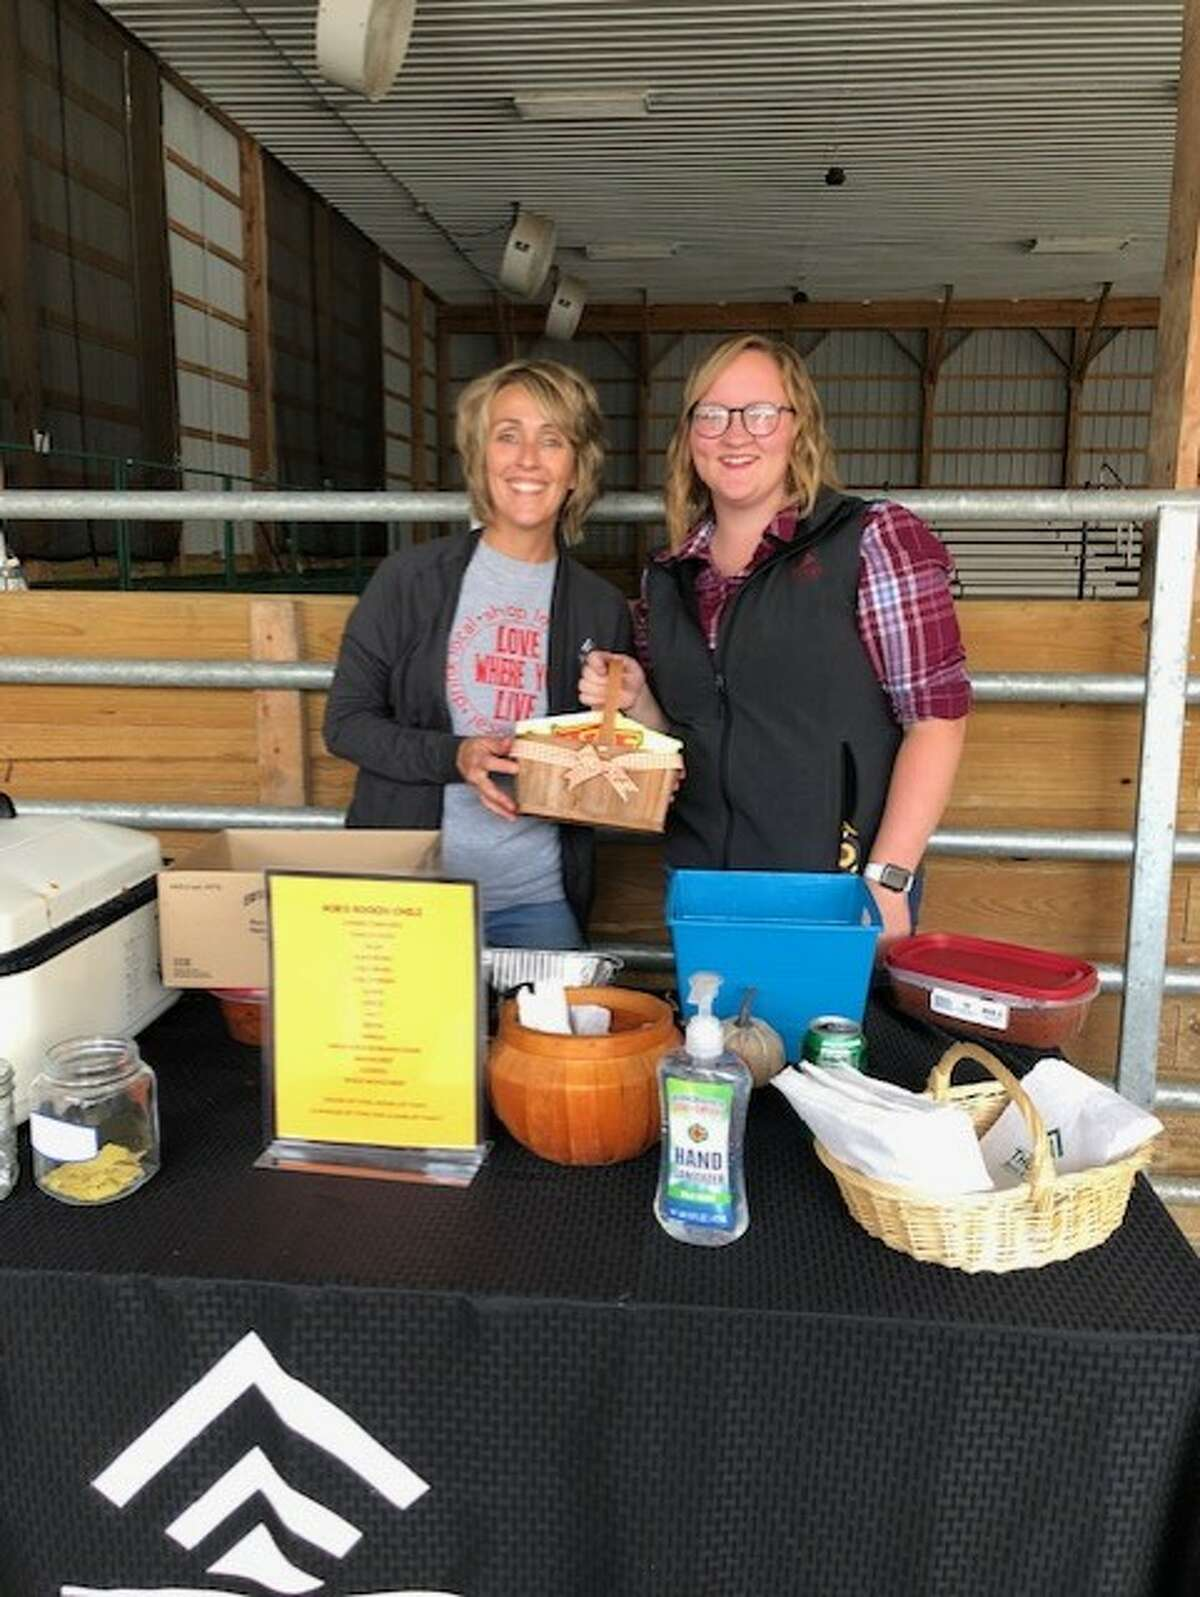 Team Thumb Bank and Trust wins the soup cook-off